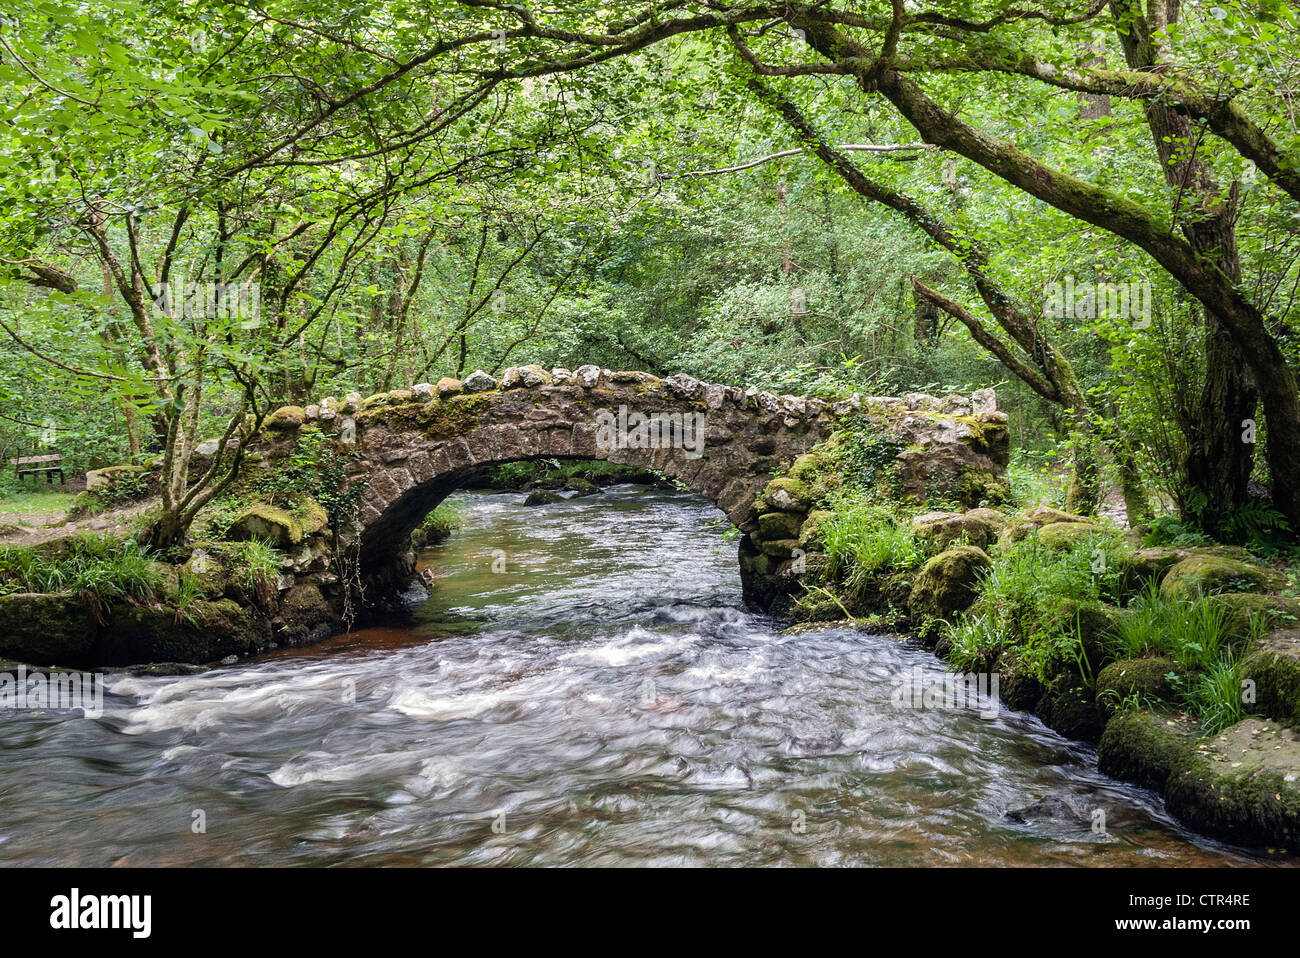 Packsaddle Bridge over the river Bovey, near Bovey Tracey, Dartmoor, Devon, England, UK. - Stock Image